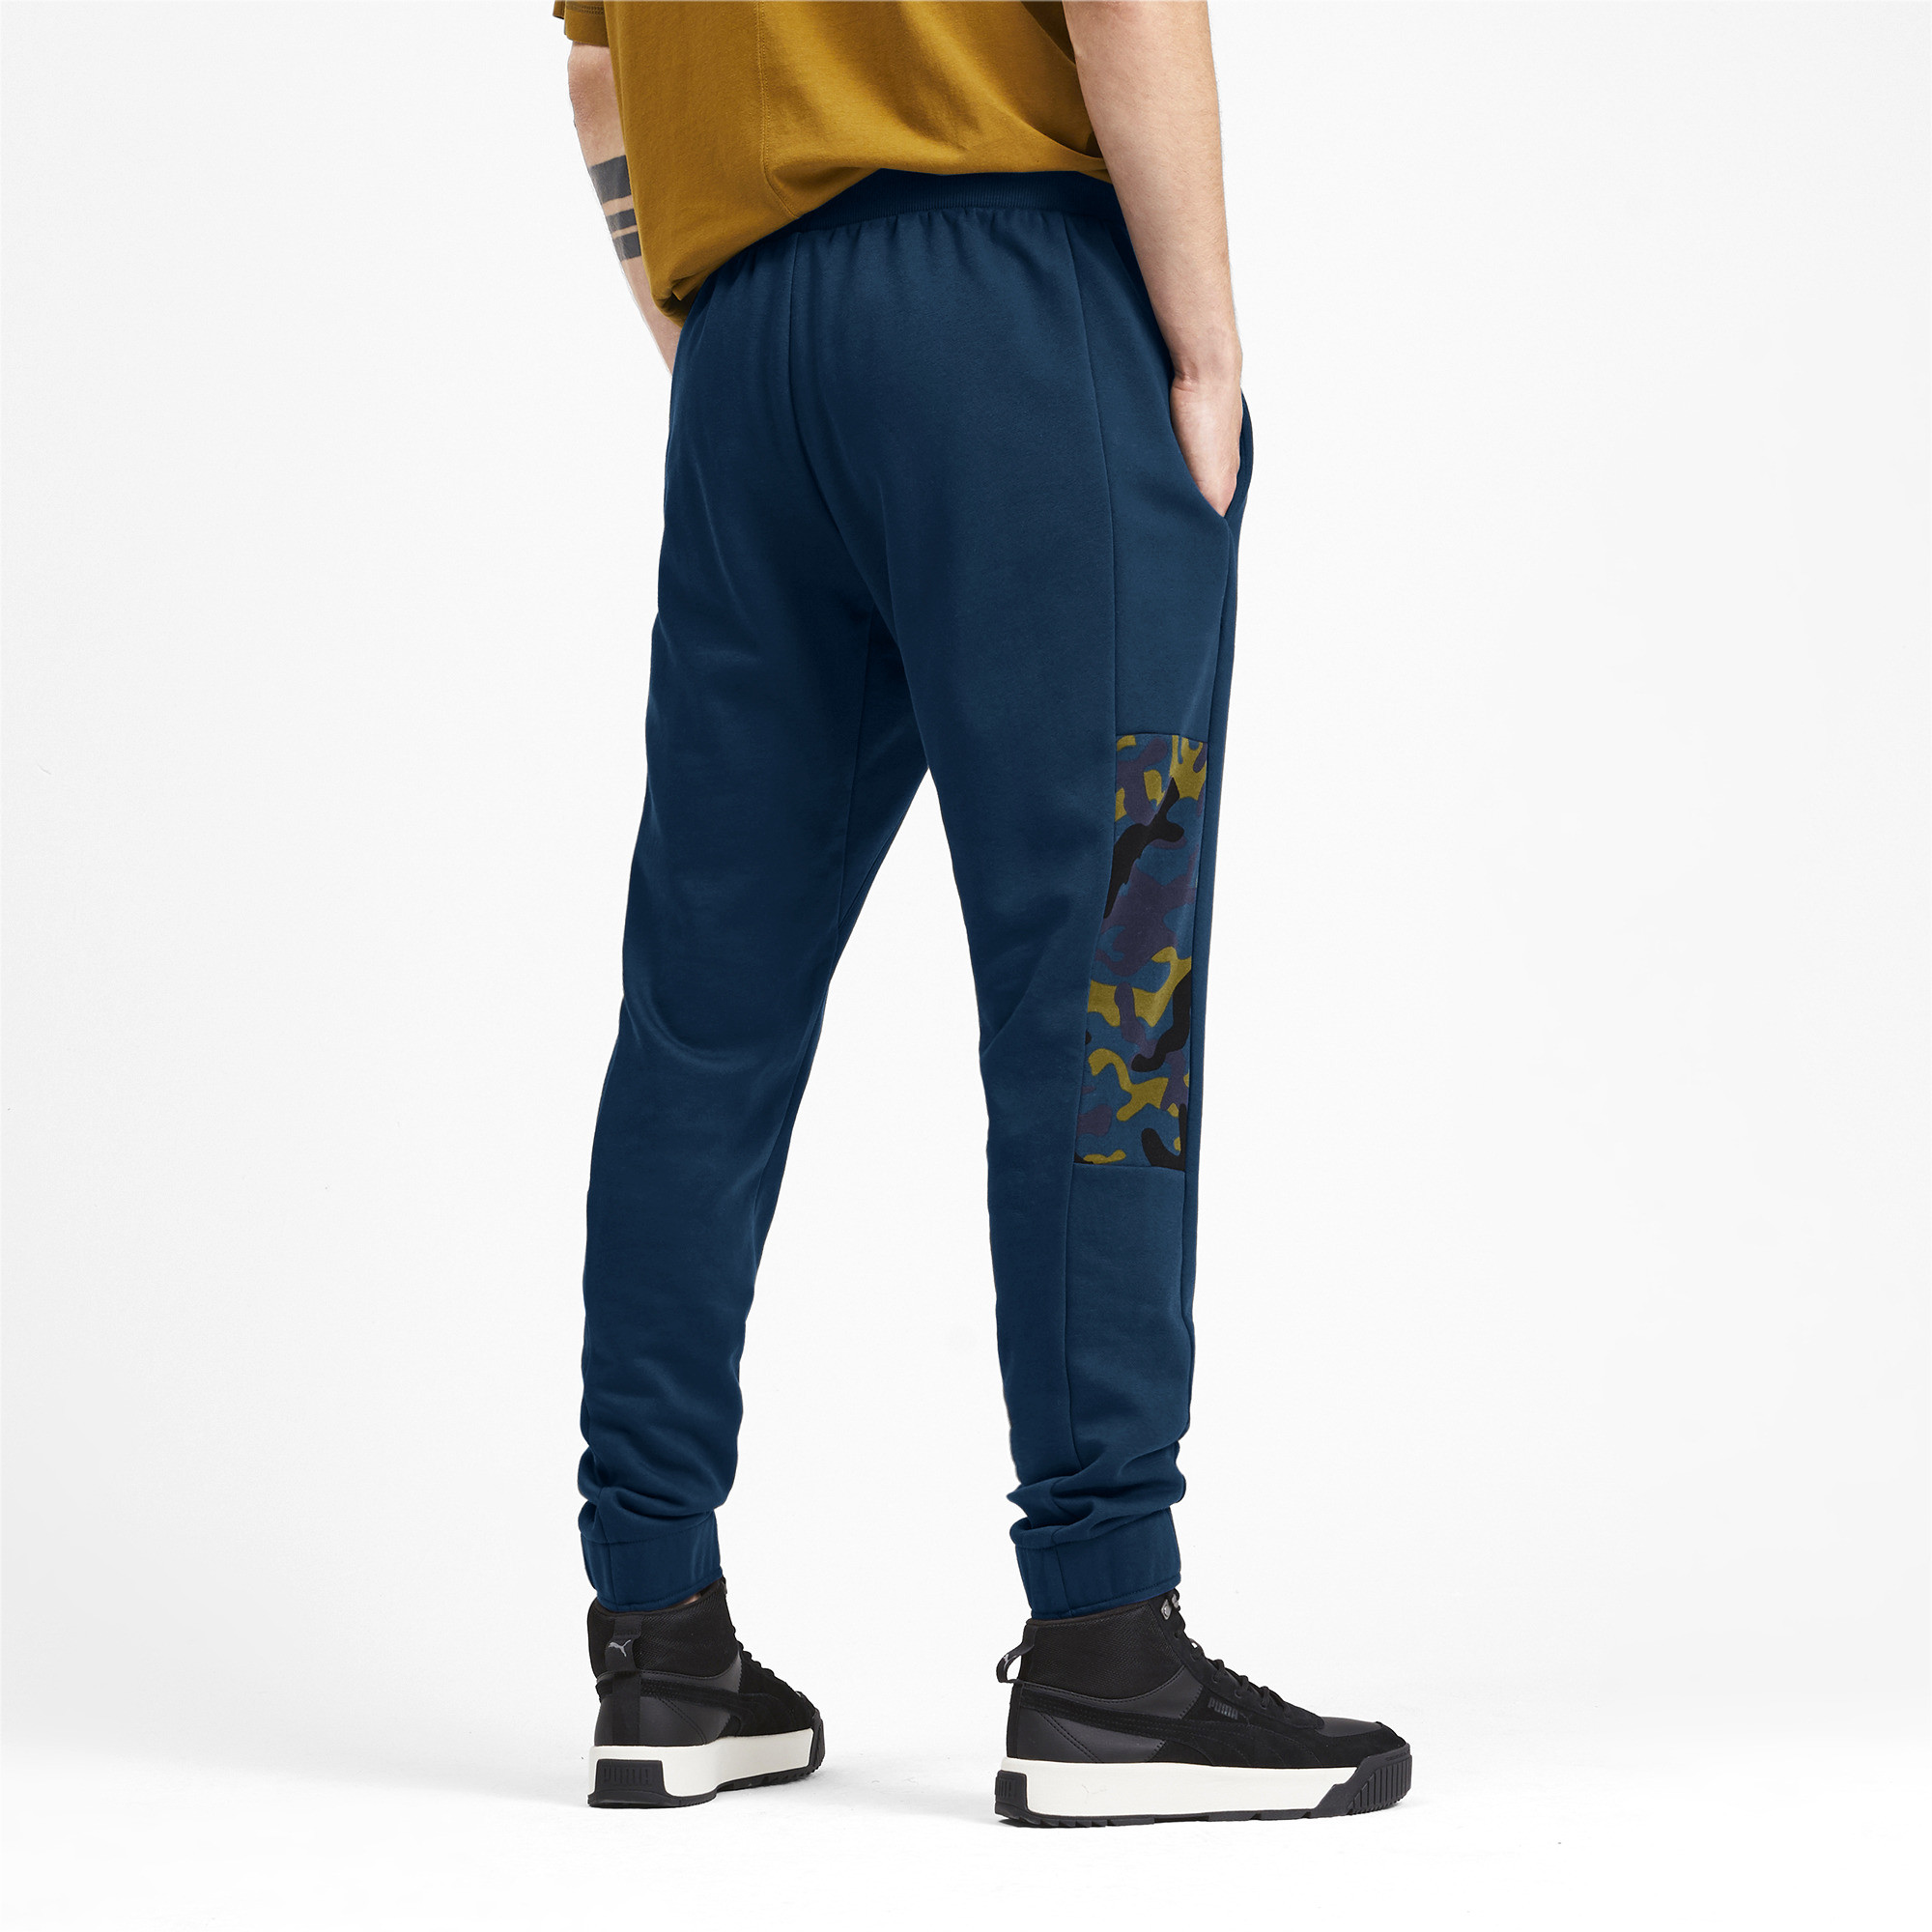 PUMA-Rebel-Camo-Men-039-s-Pants-Men-Knitted-Pants-Basics thumbnail 9